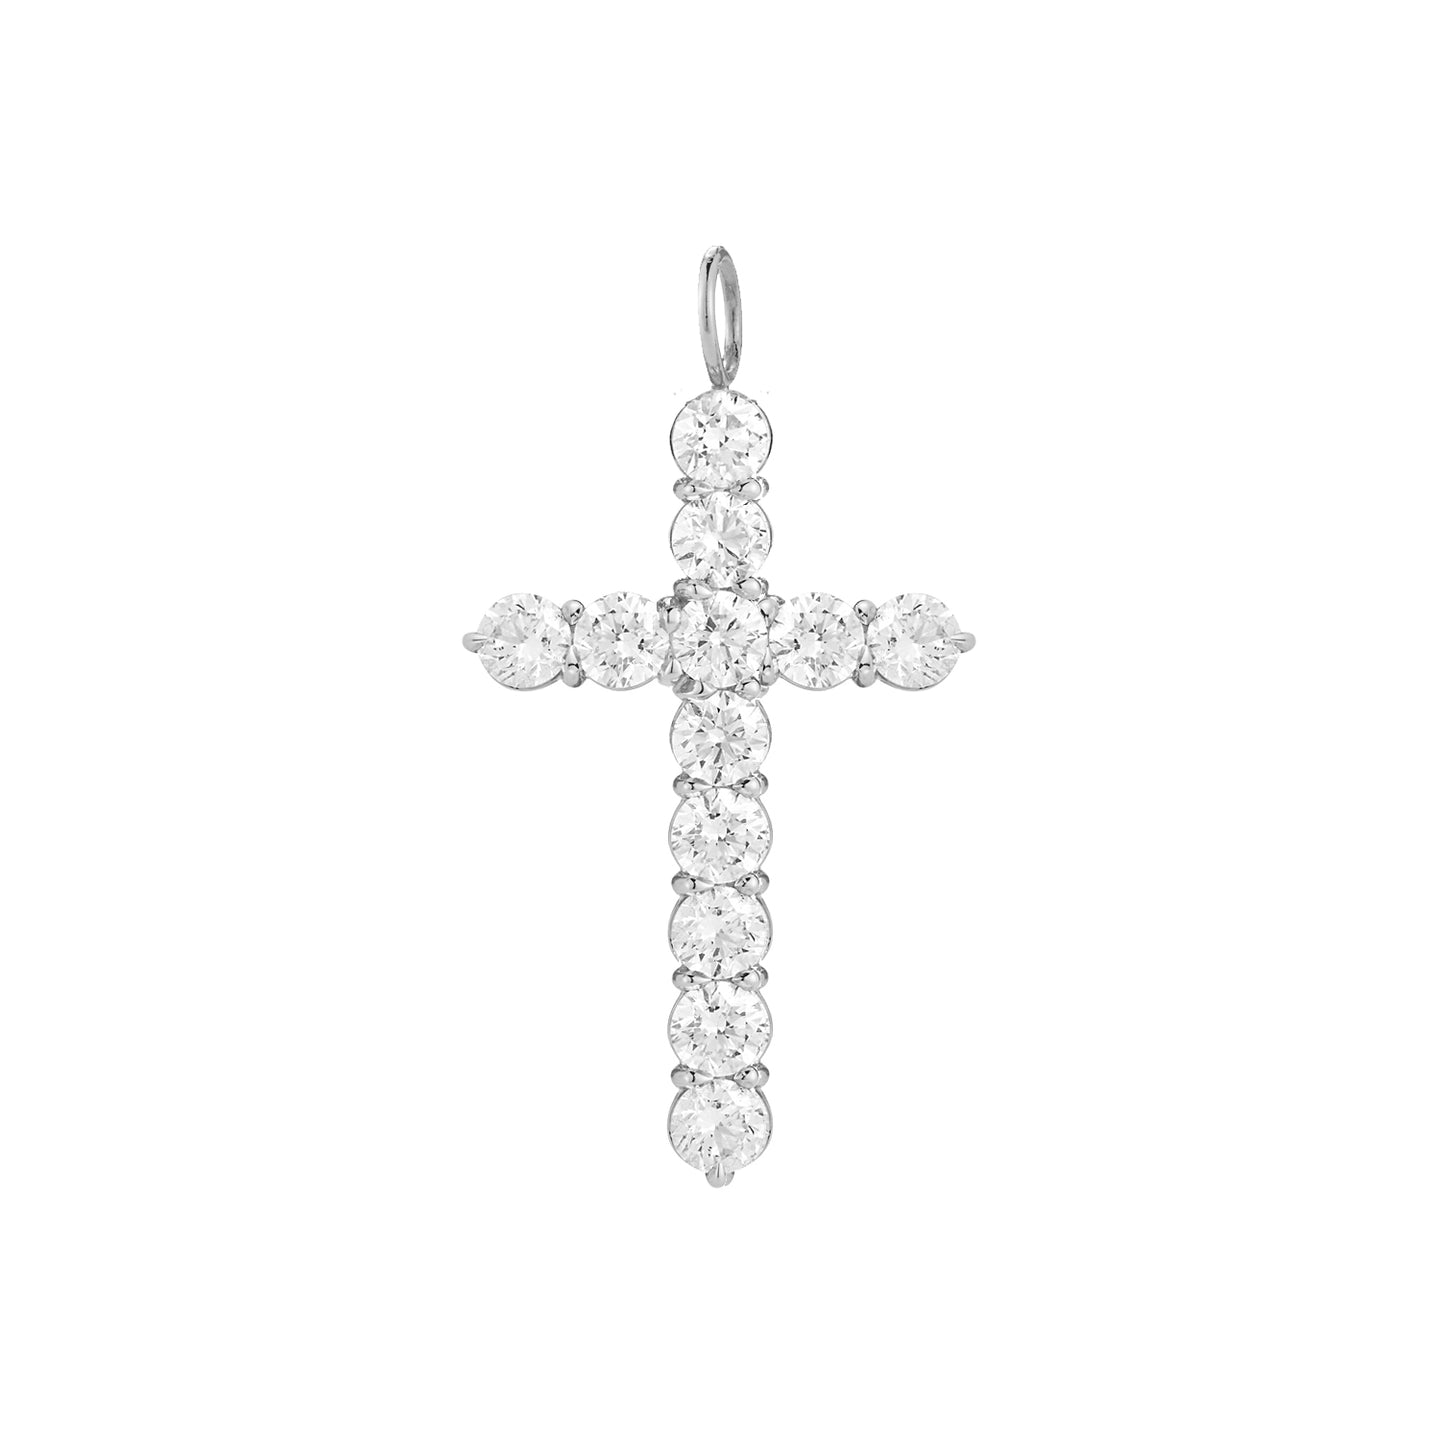 Oversized Floating Diamond Cross